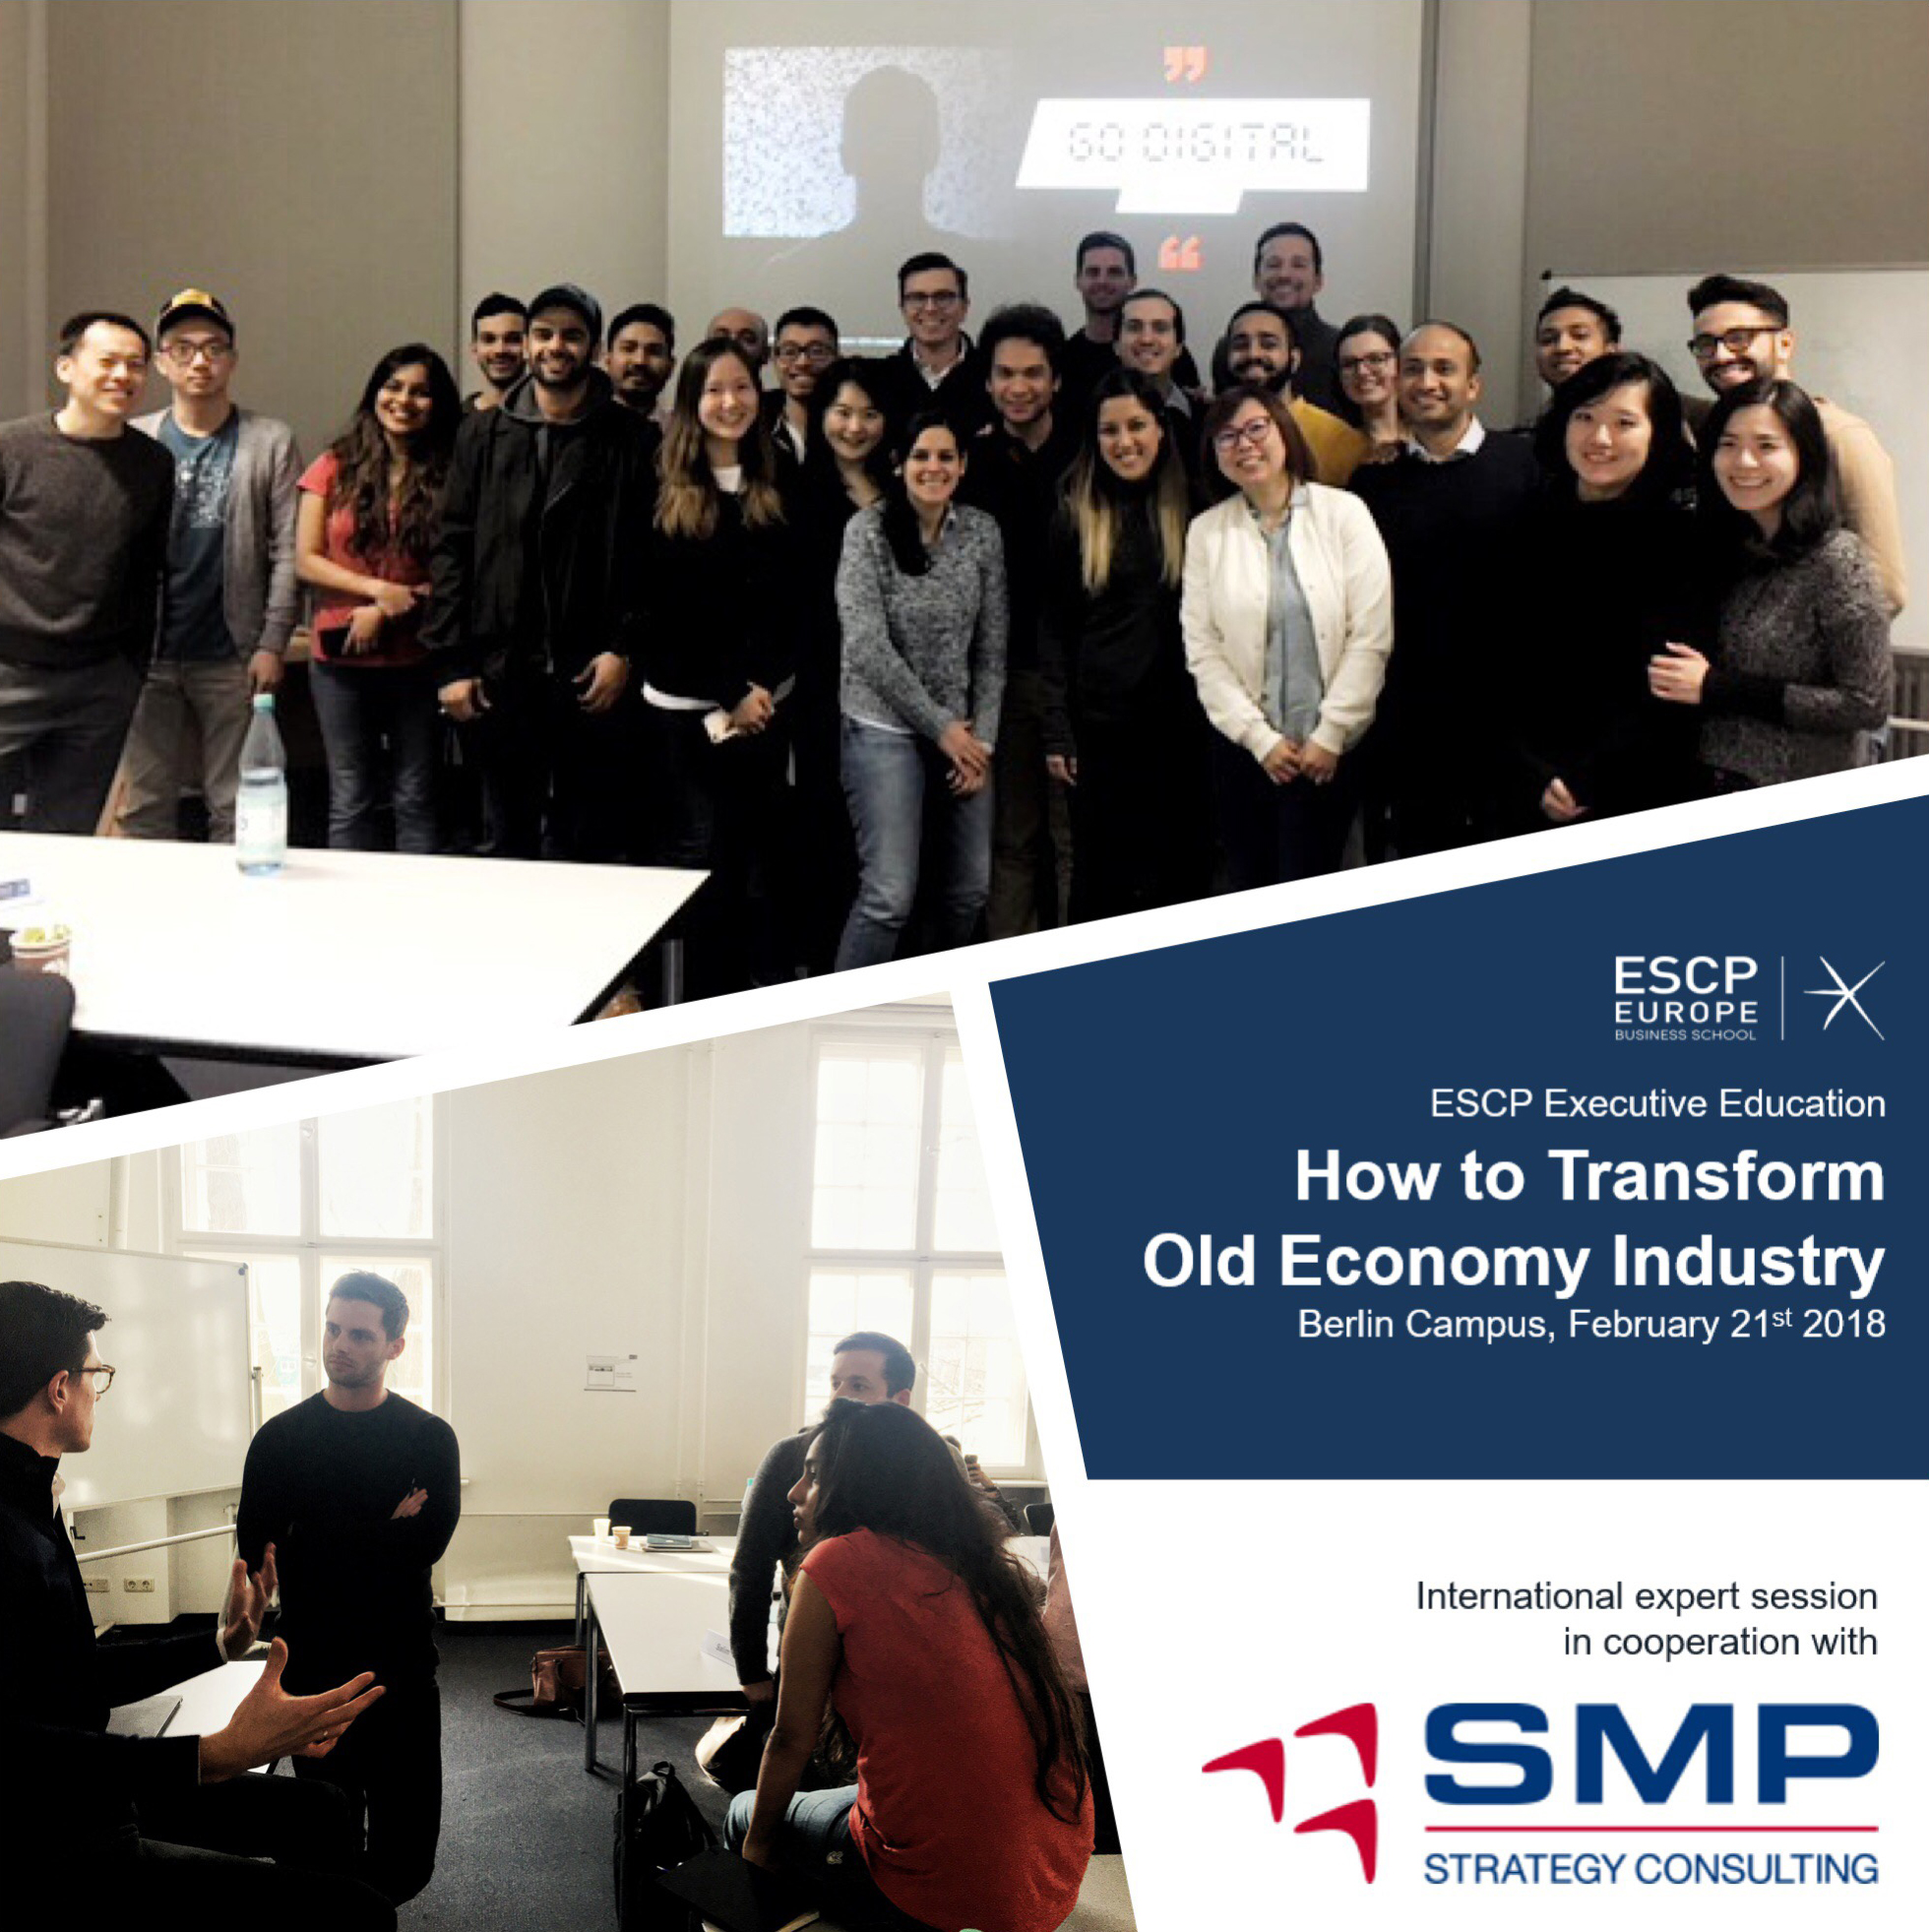 SMP Executive Education Session